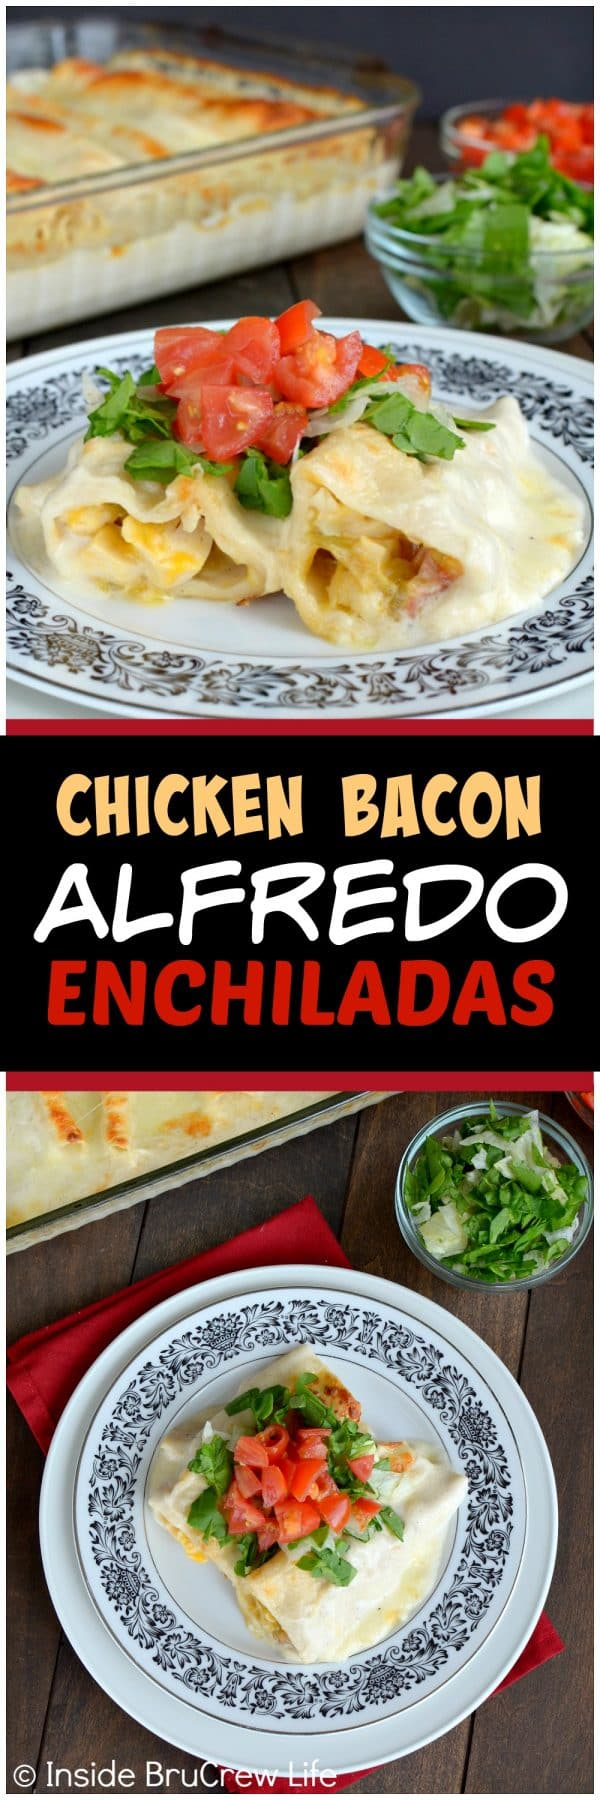 Chicken Bacon Alfredo Enchiladas - tortillas filled with chicken and bacon and topped with Alfredo and cheese. Easy dinner recipe for busy nights!